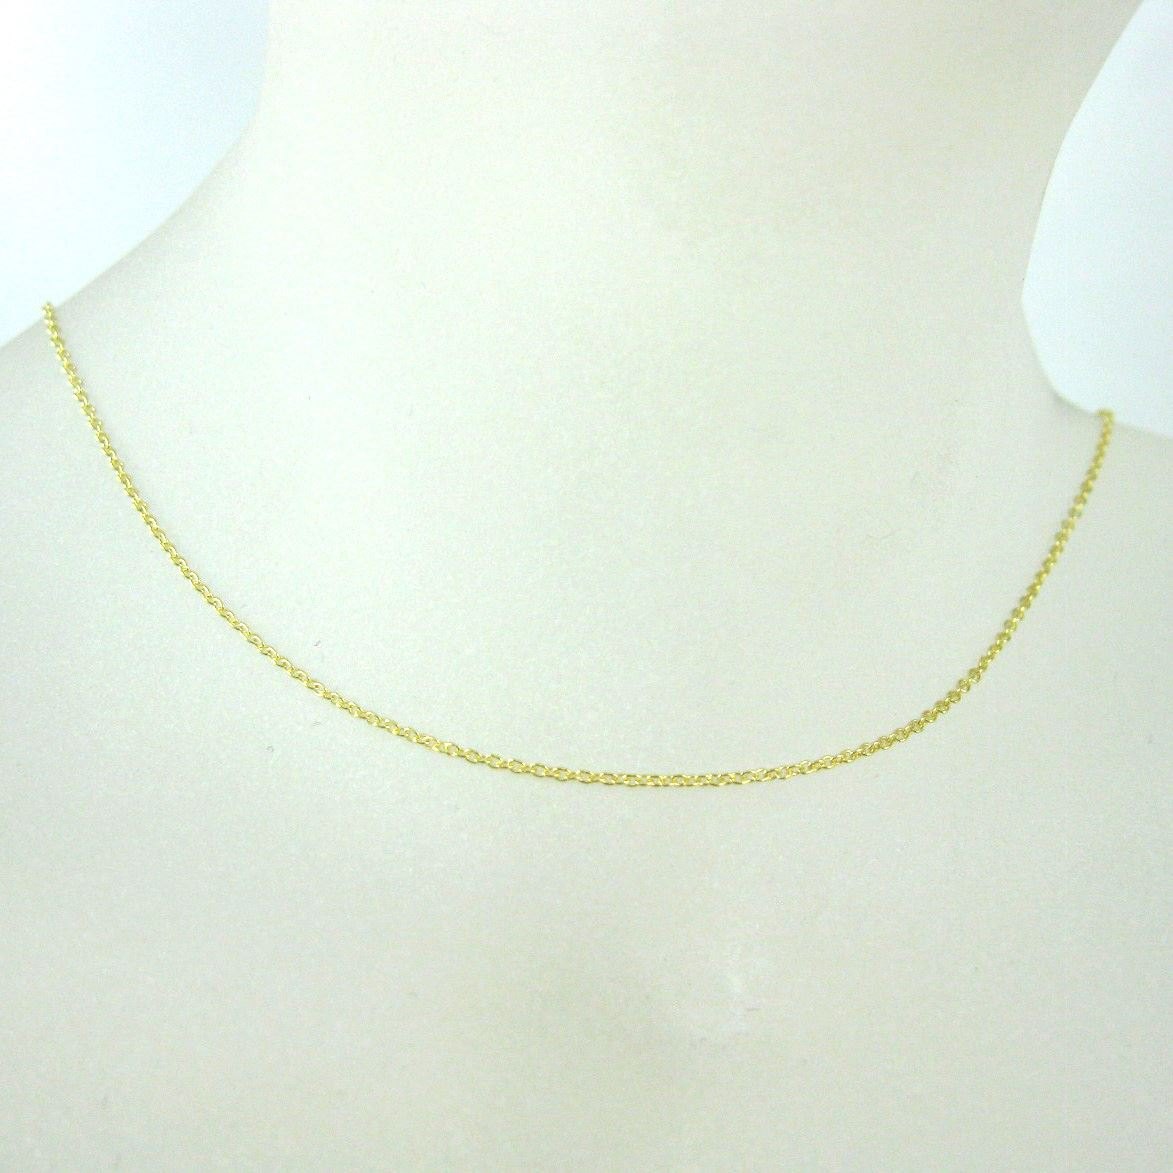 22K Gold Plated over Sterling Silver Necklace Vermeil Chain, Gold Chain - Bracelet Chain - Anklet Chain - Tiny Plain Cable Oval - Long Necklace -All Sizes